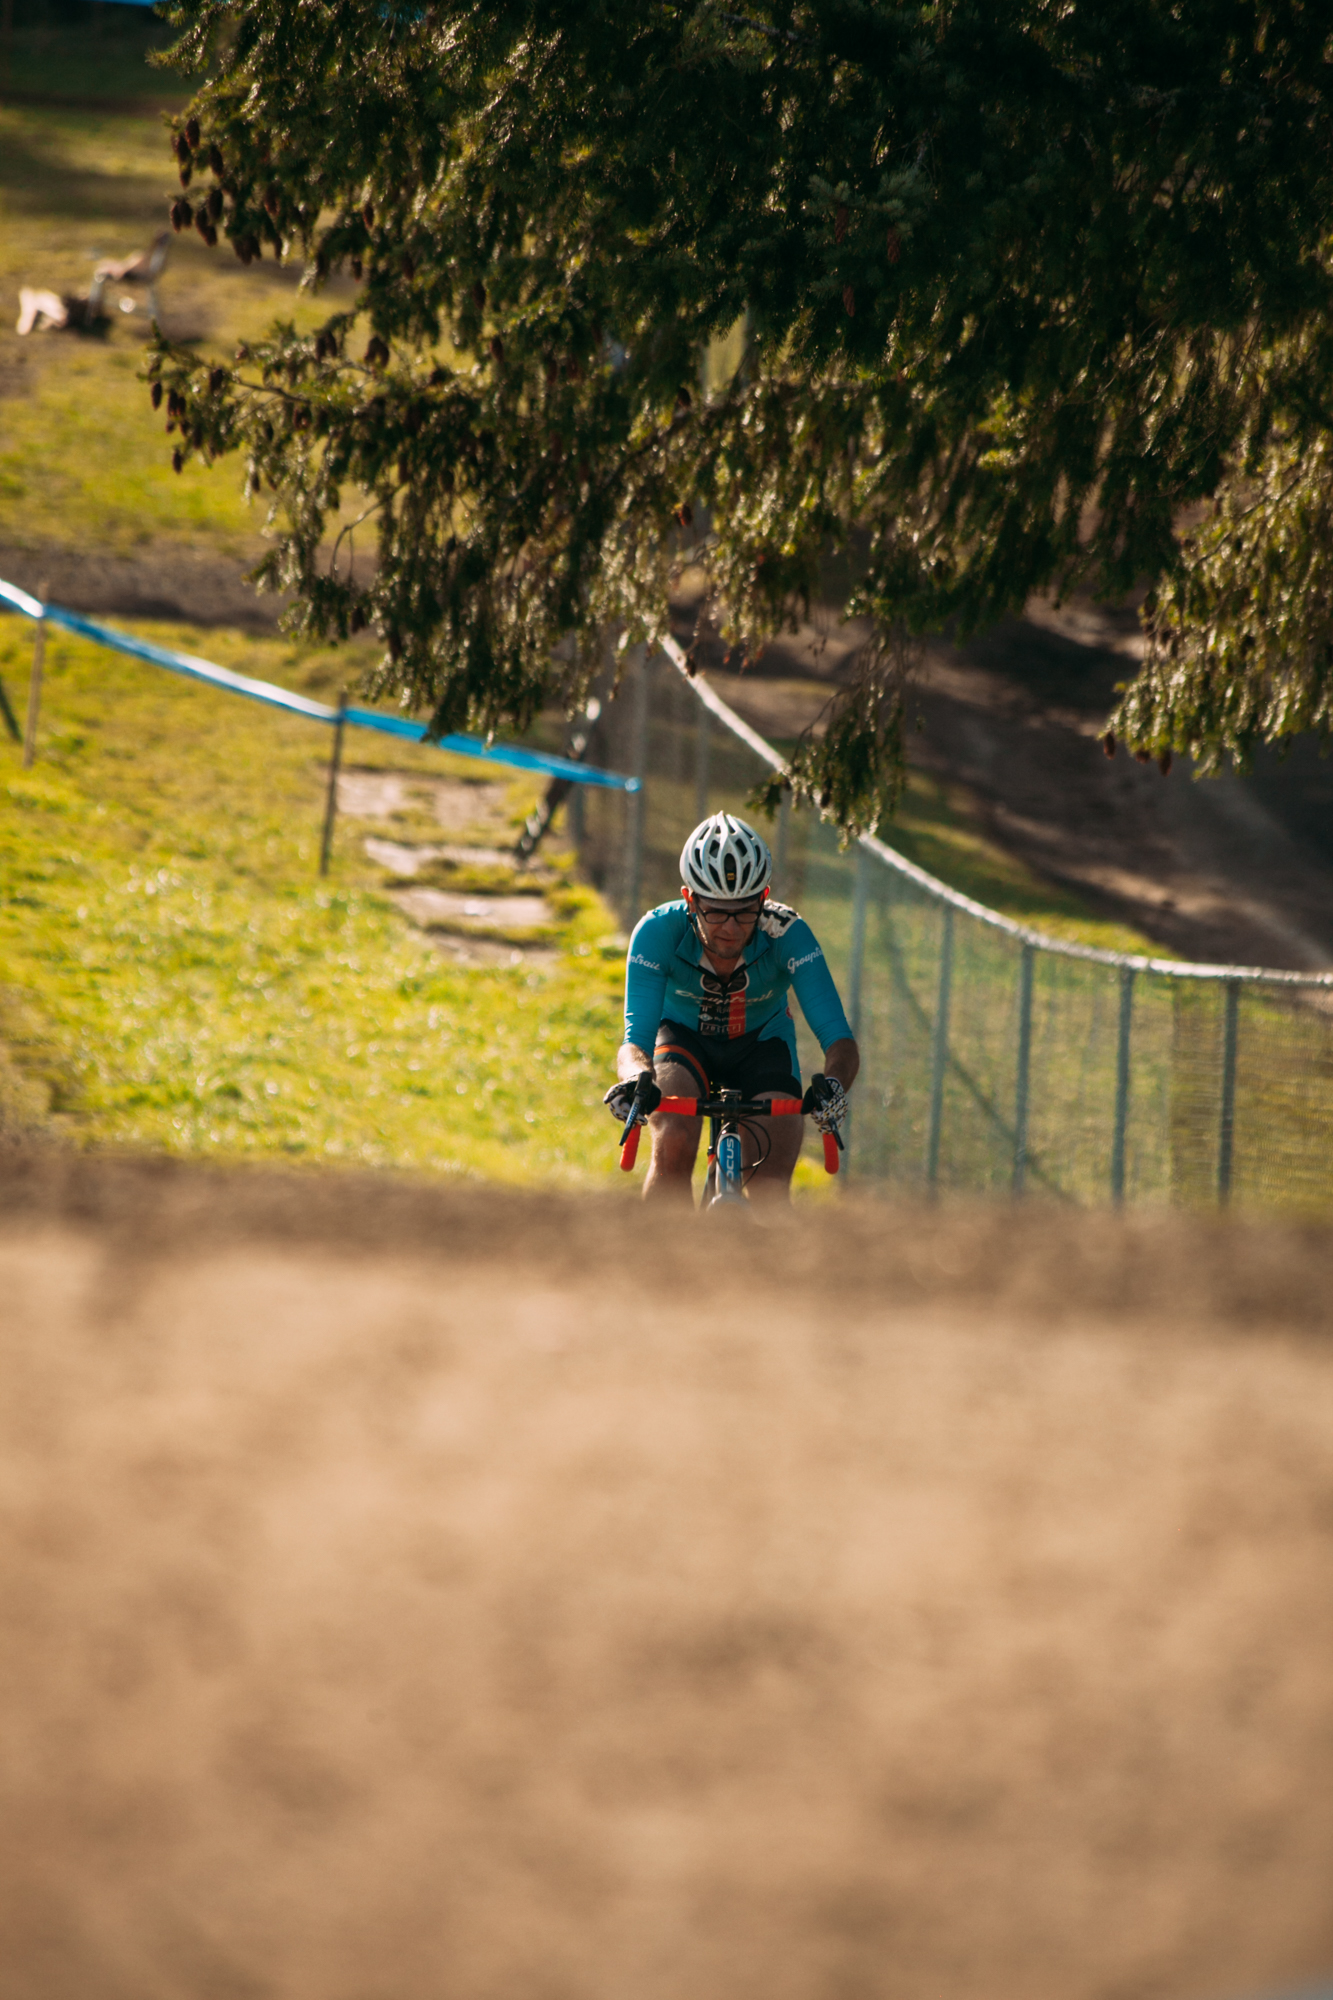 Cyclocross18_CCCX_RainierHS-203-mettlecycling.jpg